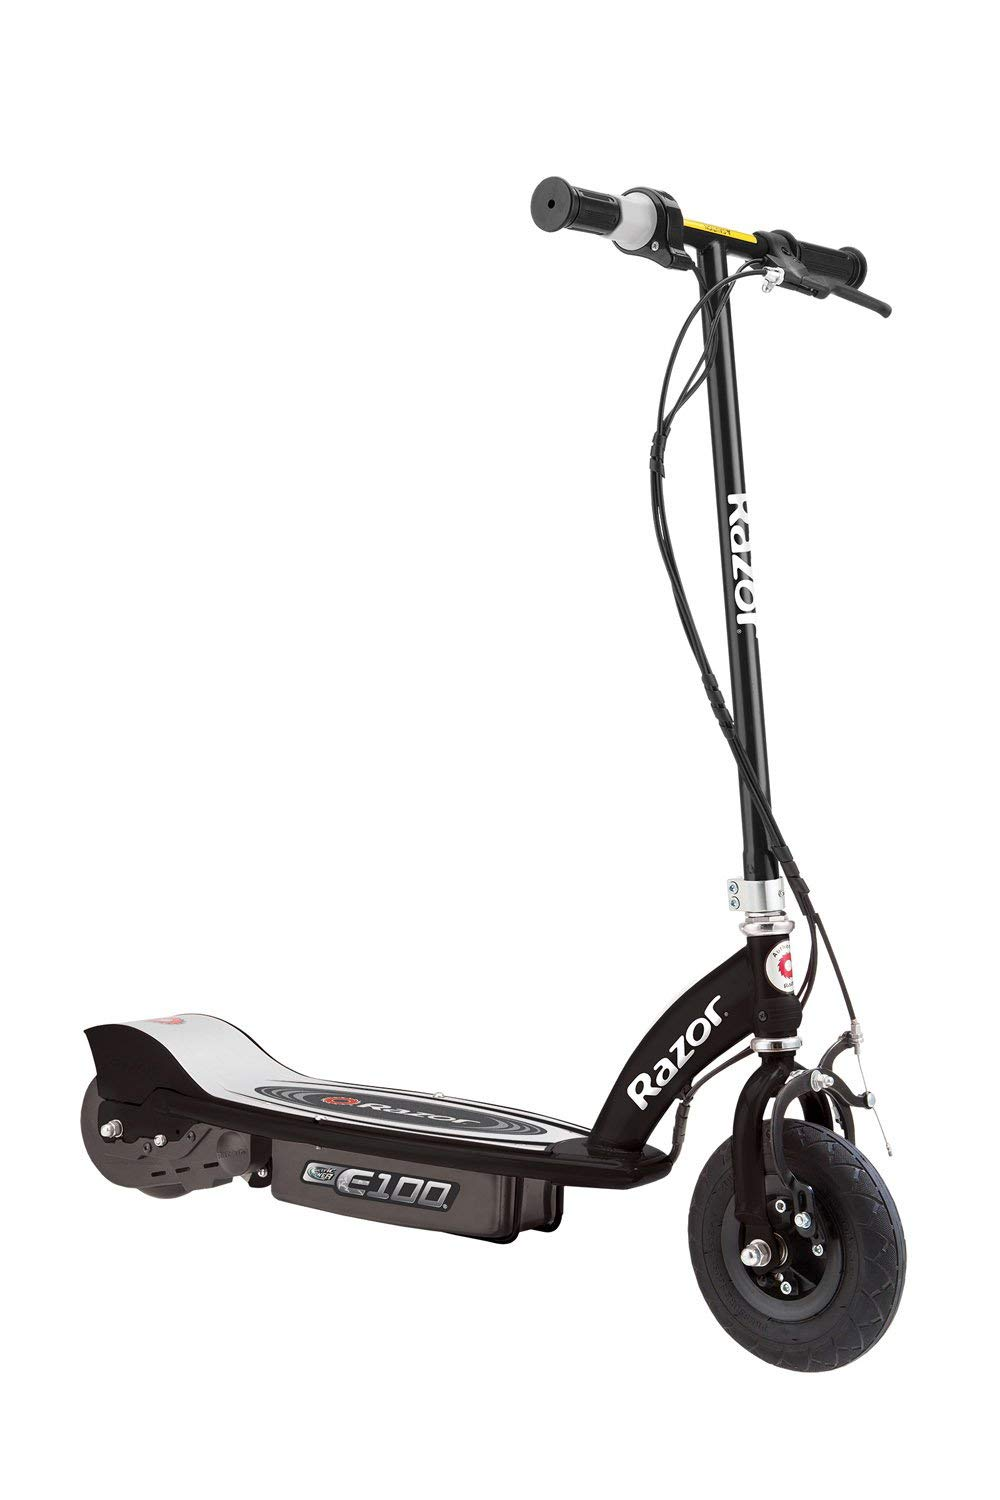 Amazon.com : Razor E100 Motorized 24-Volt Electric Rechargeable Ride-On  Outdoor Scooter Black : Sports & Outdoors